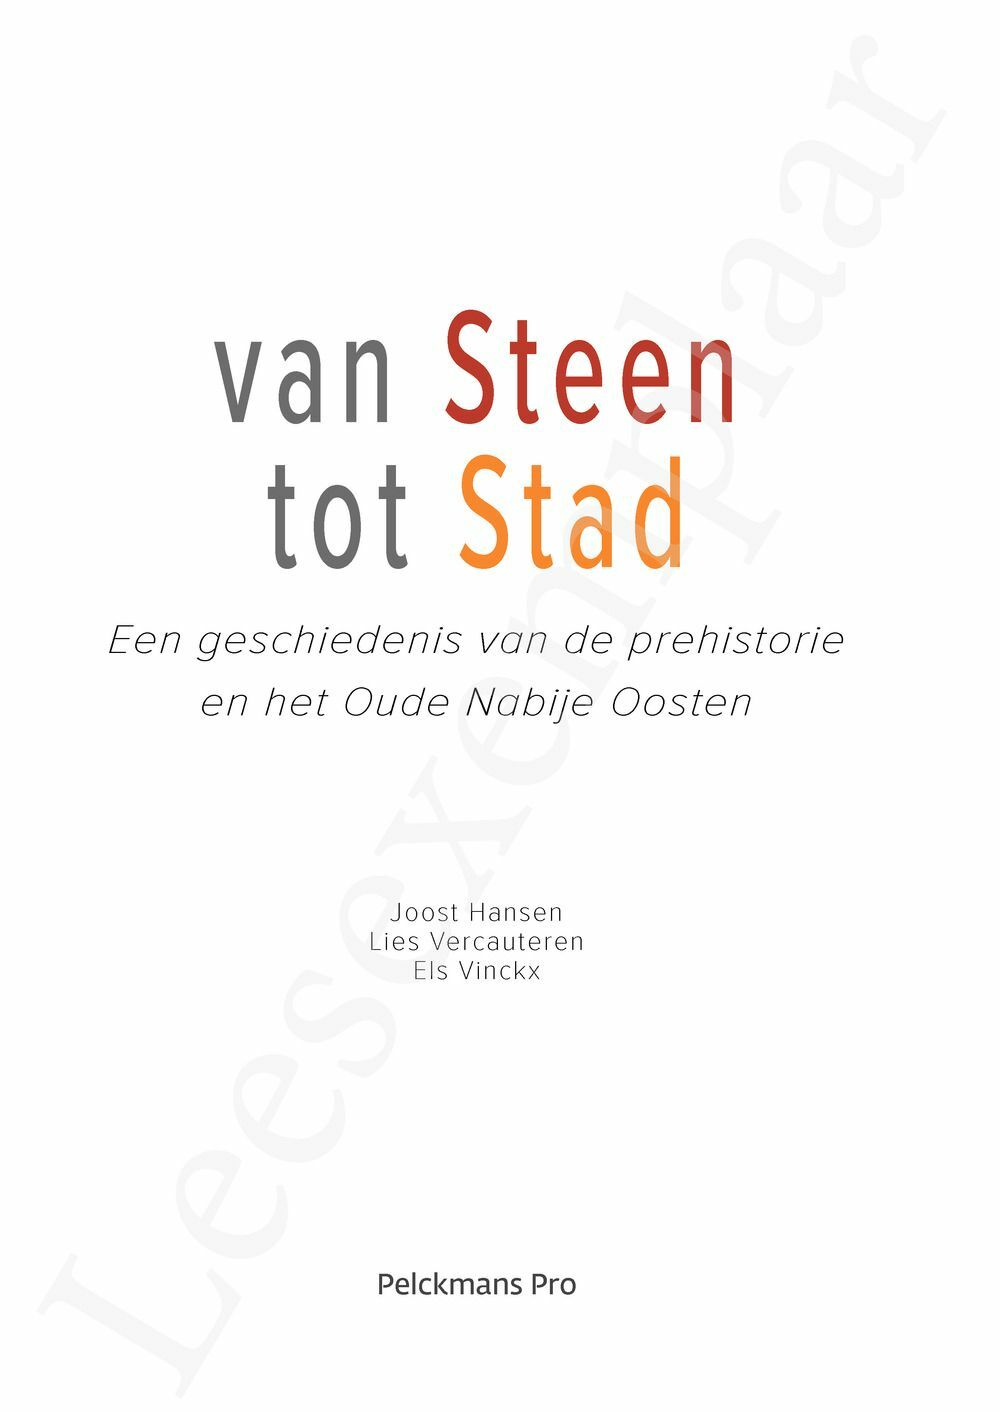 Preview: Van steen tot stad